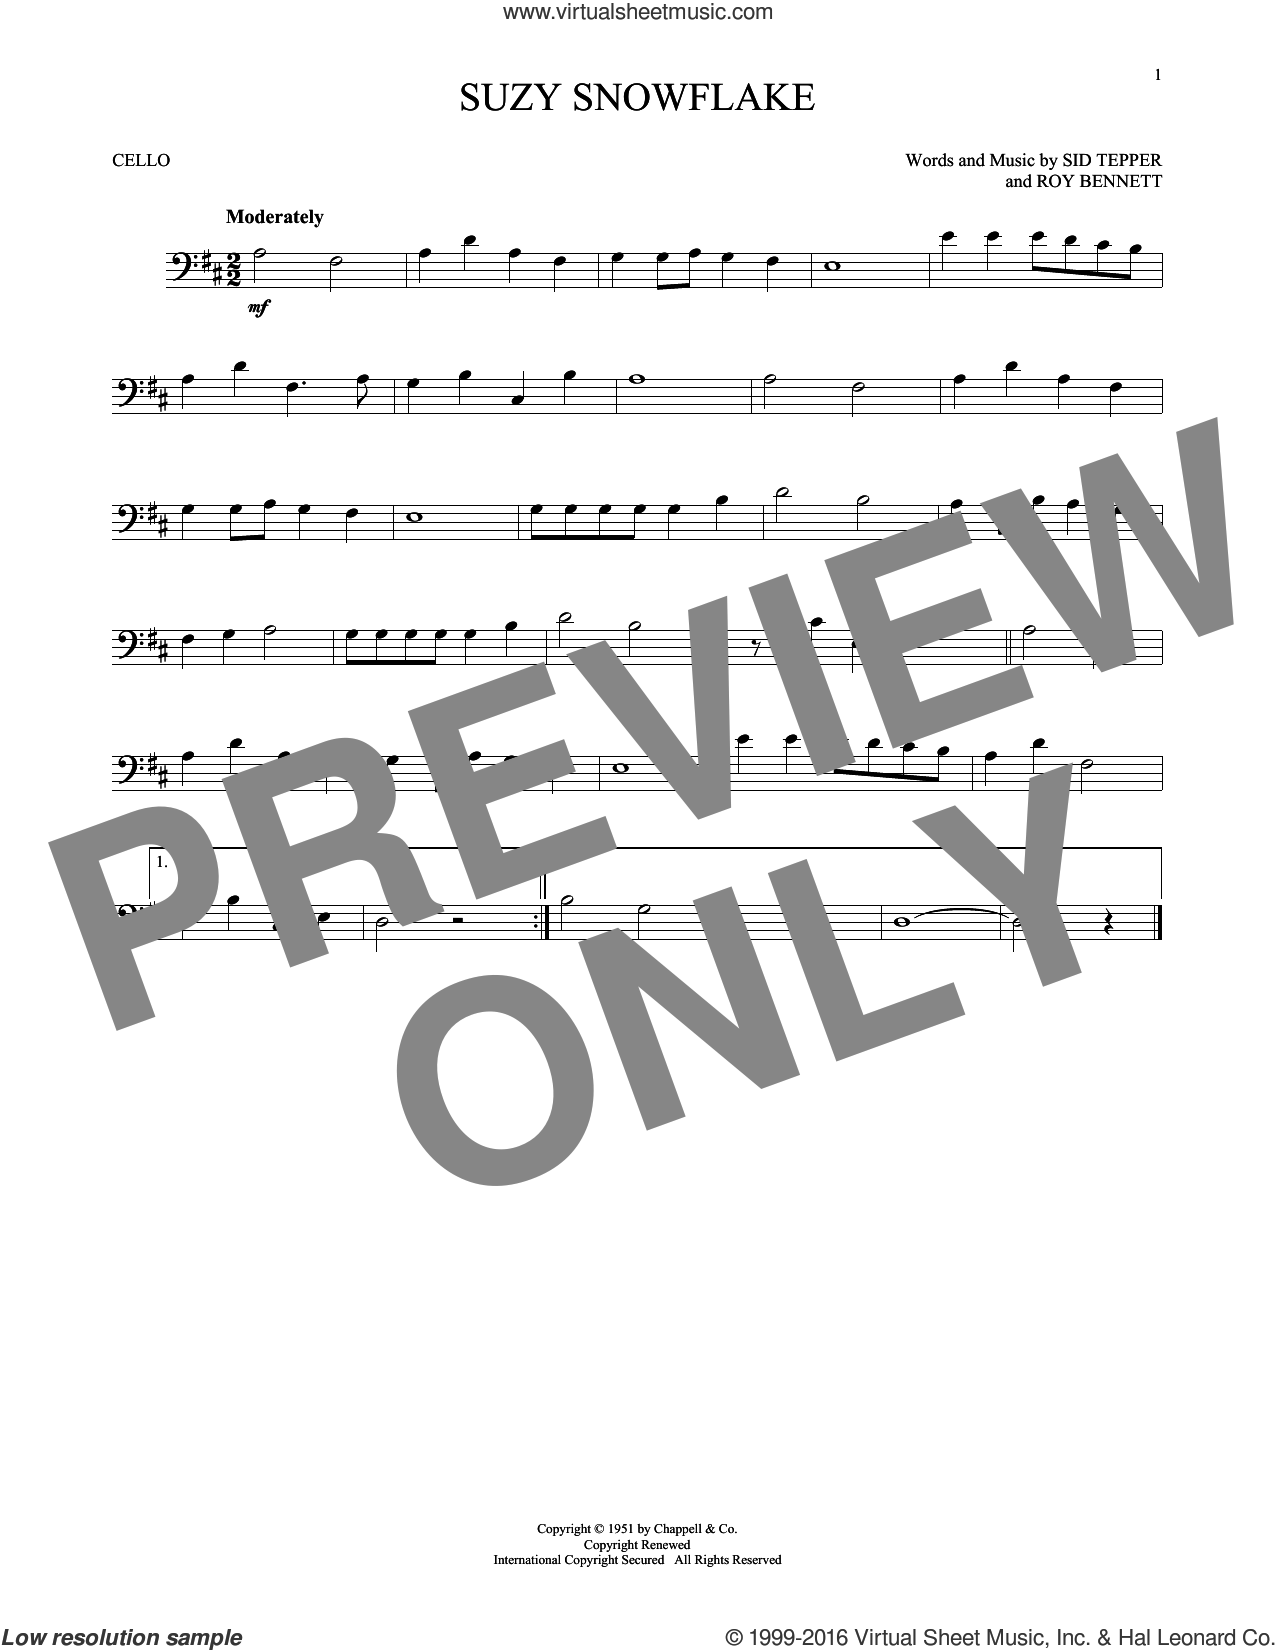 Suzy Snowflake sheet music for cello solo by Sid Tepper and Roy Bennett. Score Image Preview.